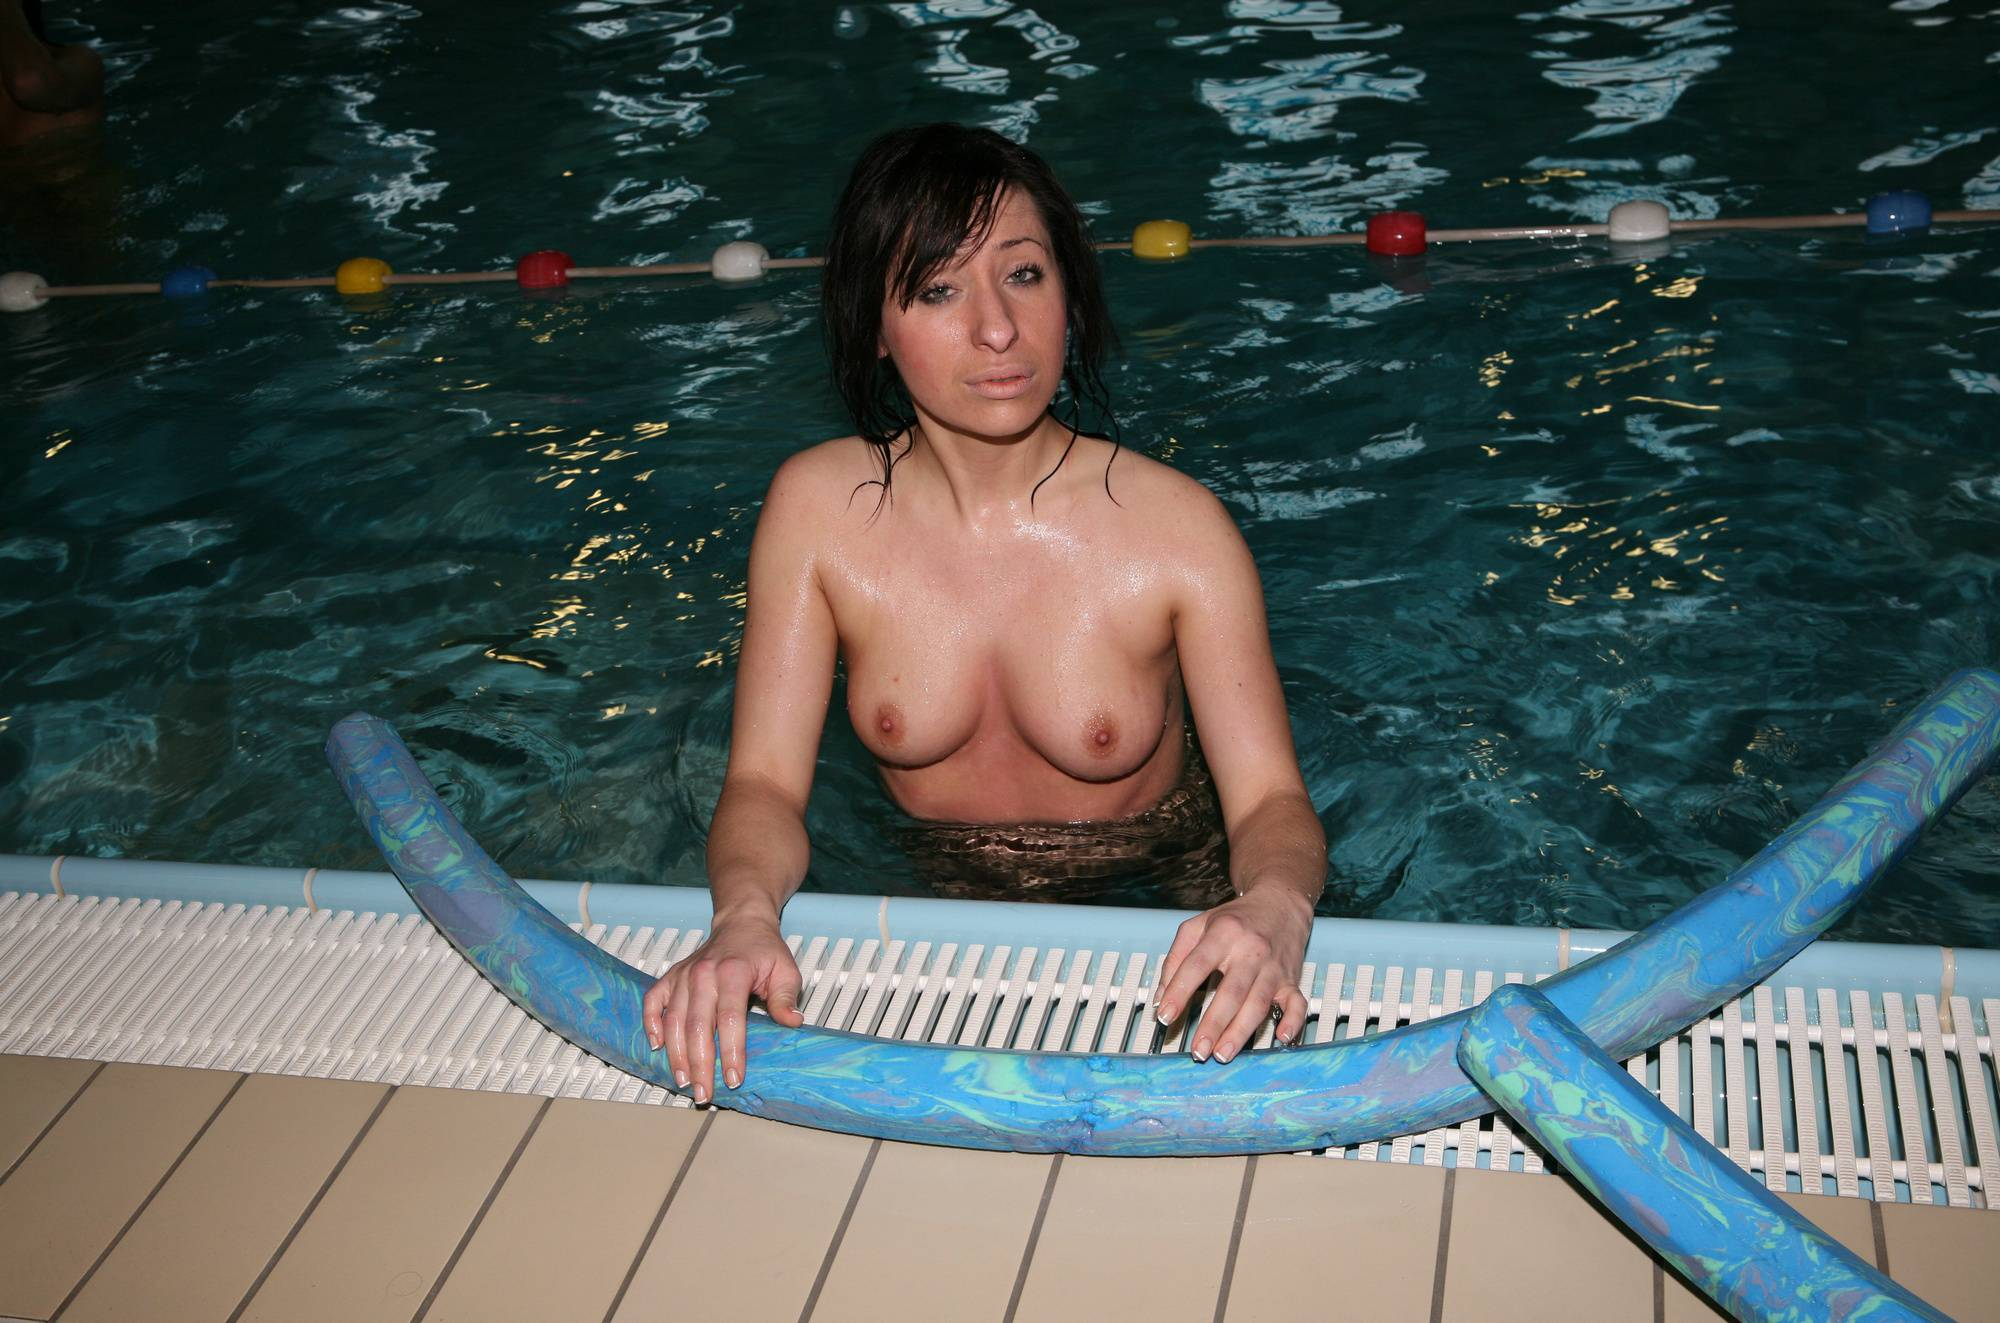 Nudist Pics Swimming Time Noodle - 1